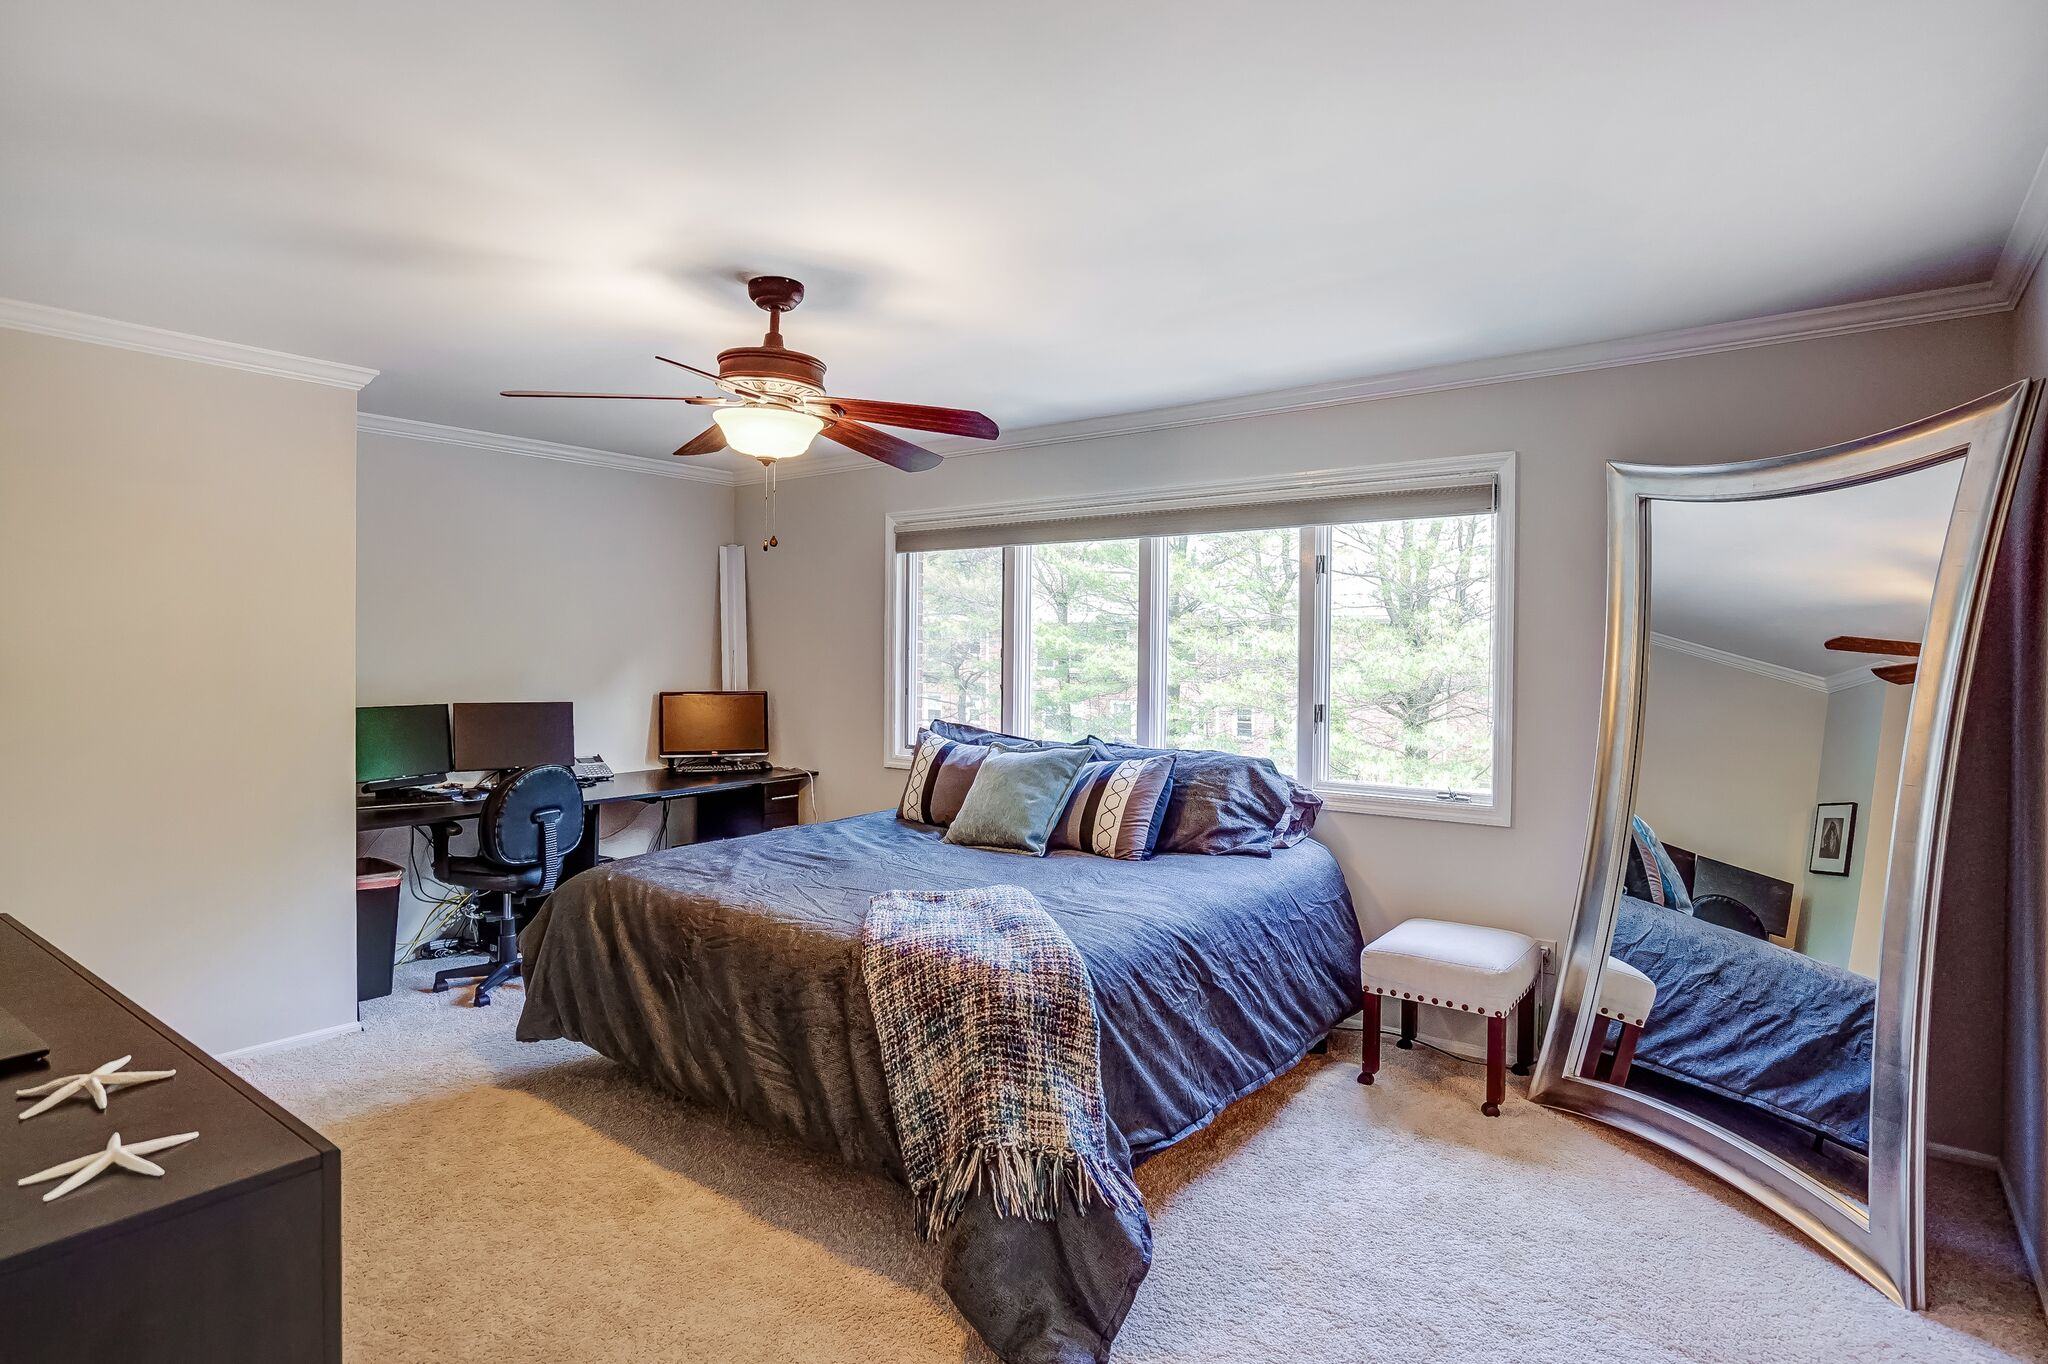 9 Master Bedroom suite with spacious walk-in closet, additional closet and ensuite bath HNVNZUCBSgPUHJTGFYqh_YQ9-sz8c9ML7aLkCGh2Dxw.jpg